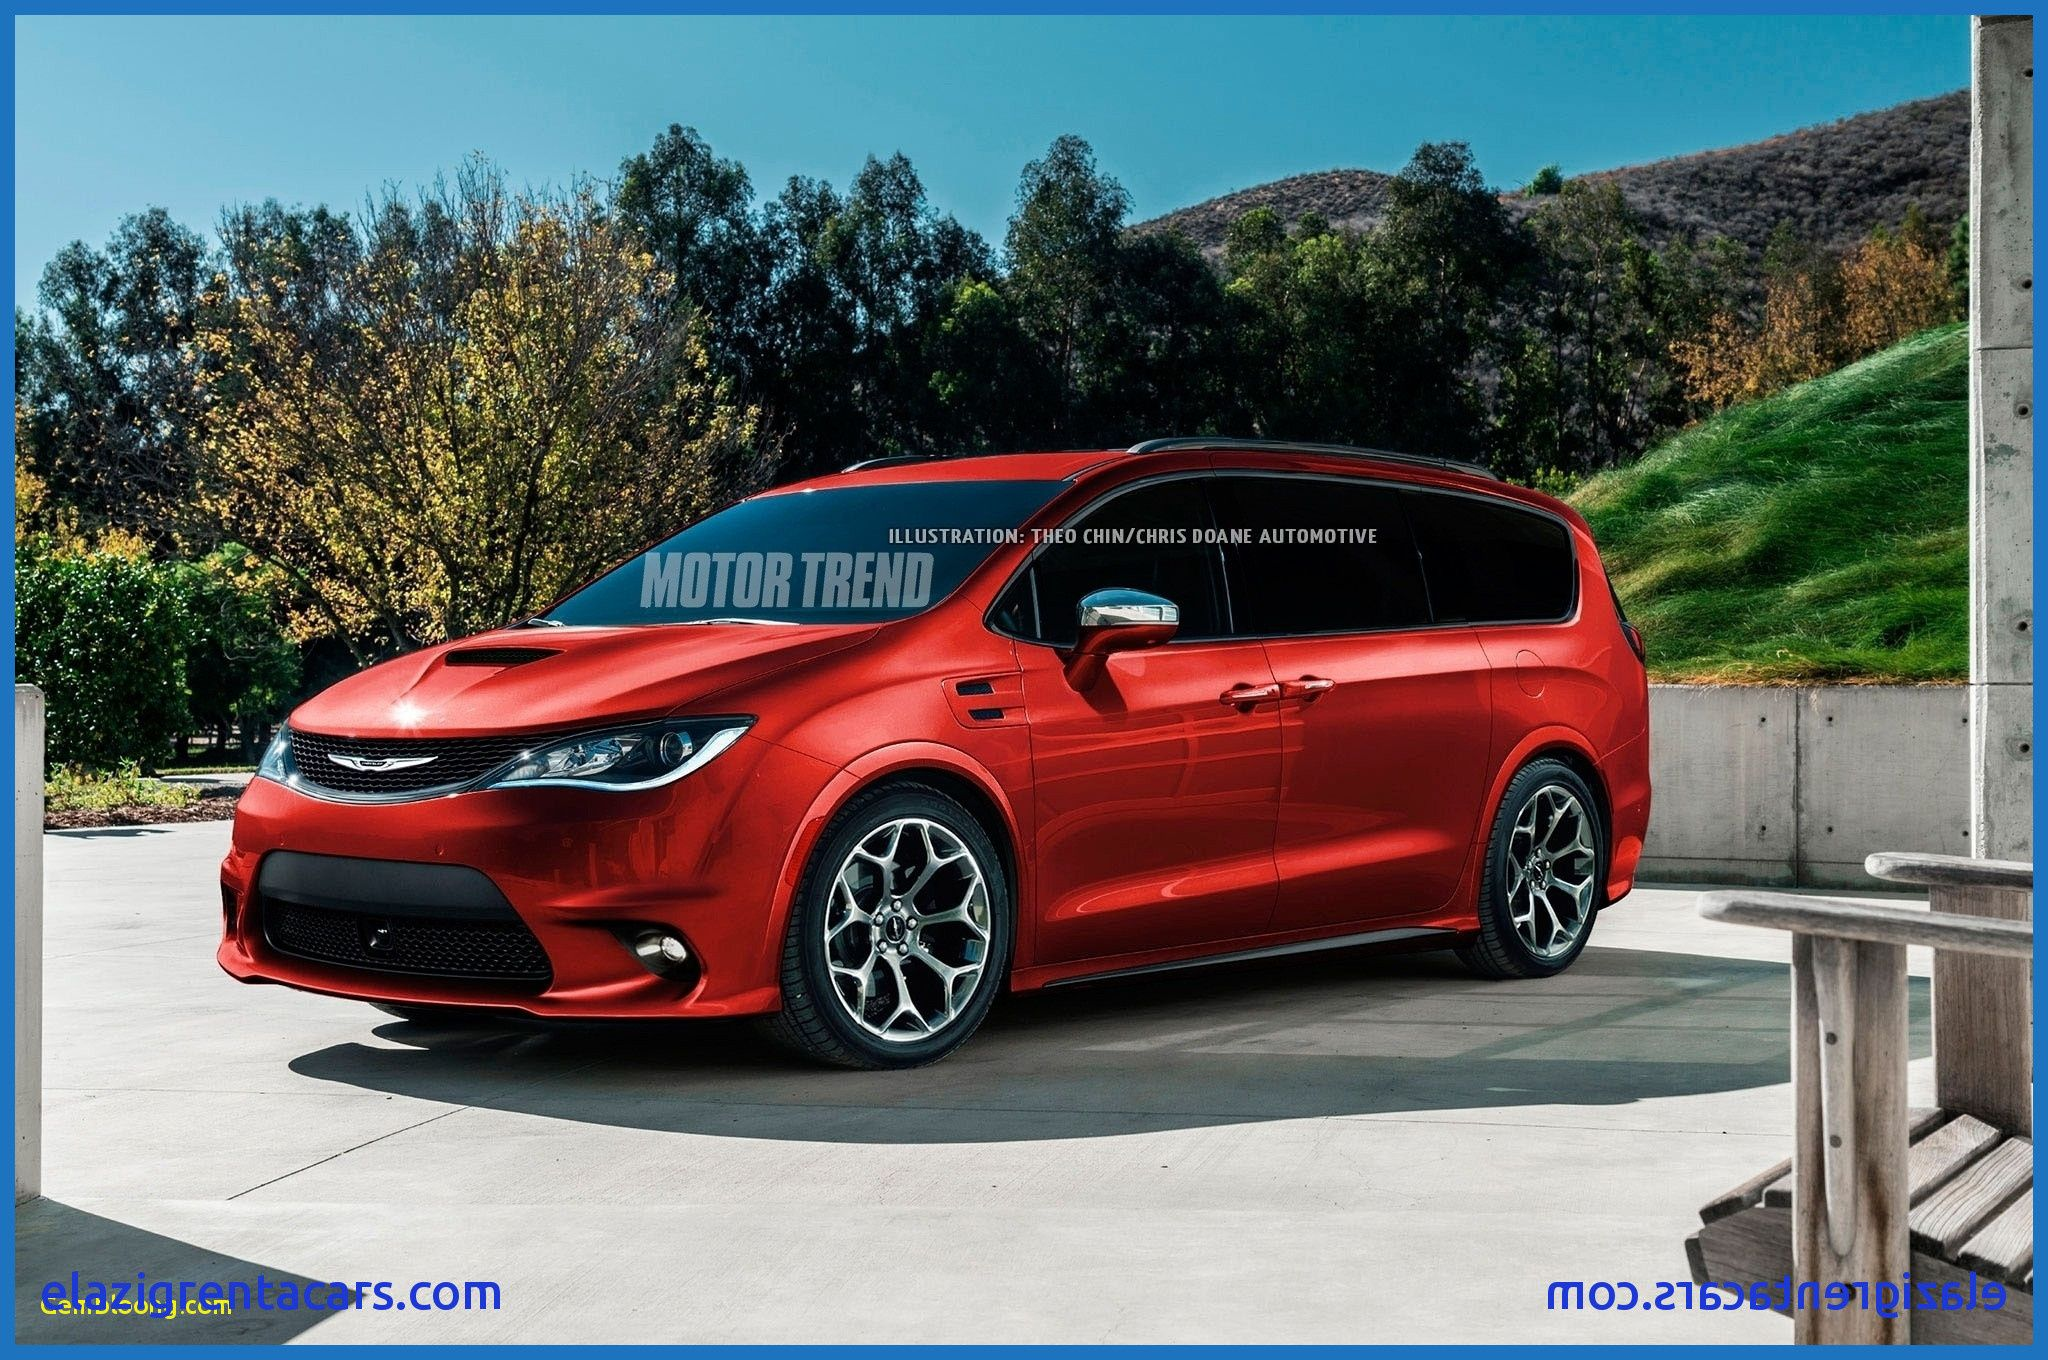 2020 Dodge Dart Srt4 Check More At Http Www Cars1 Club 2019 05